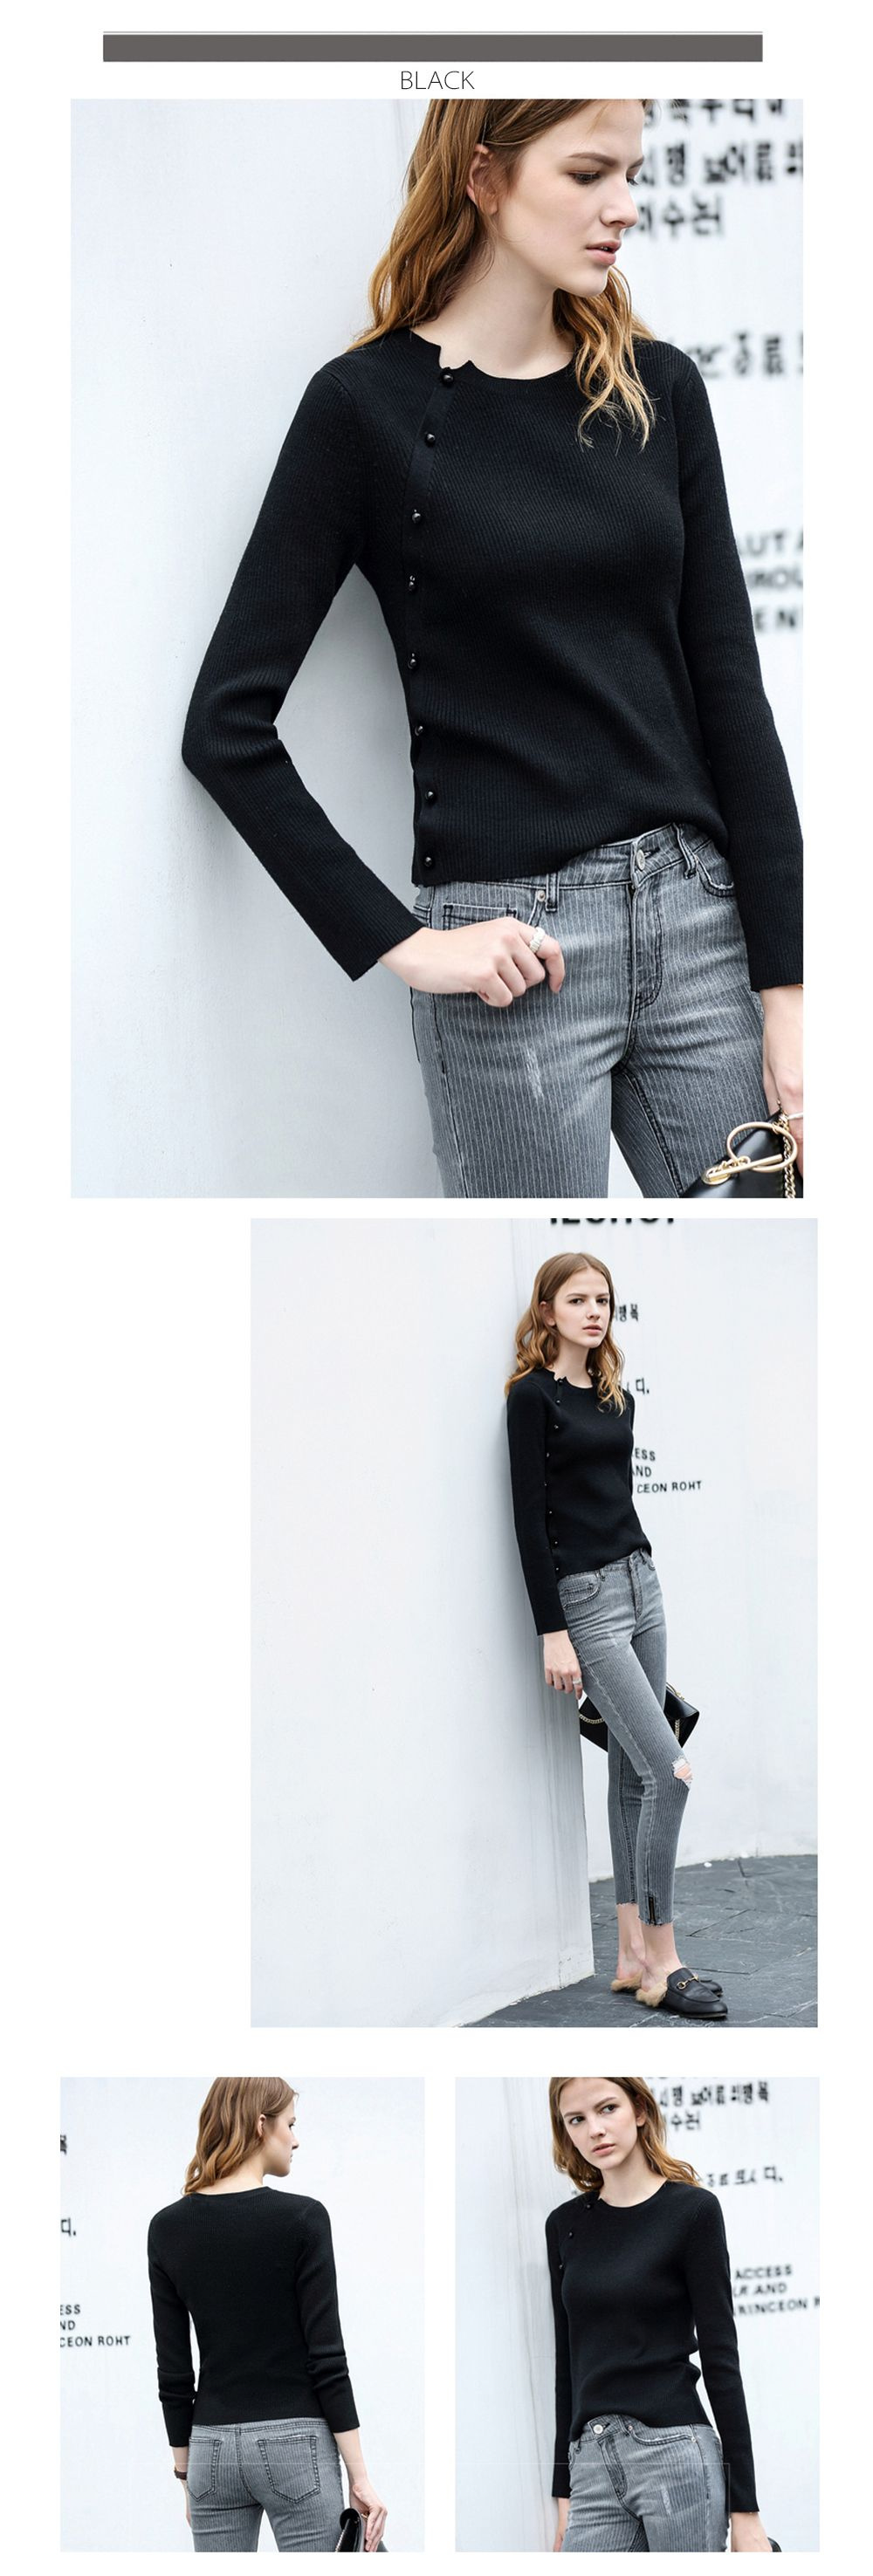 Beads Women Knitted Sweater Minimalist Design